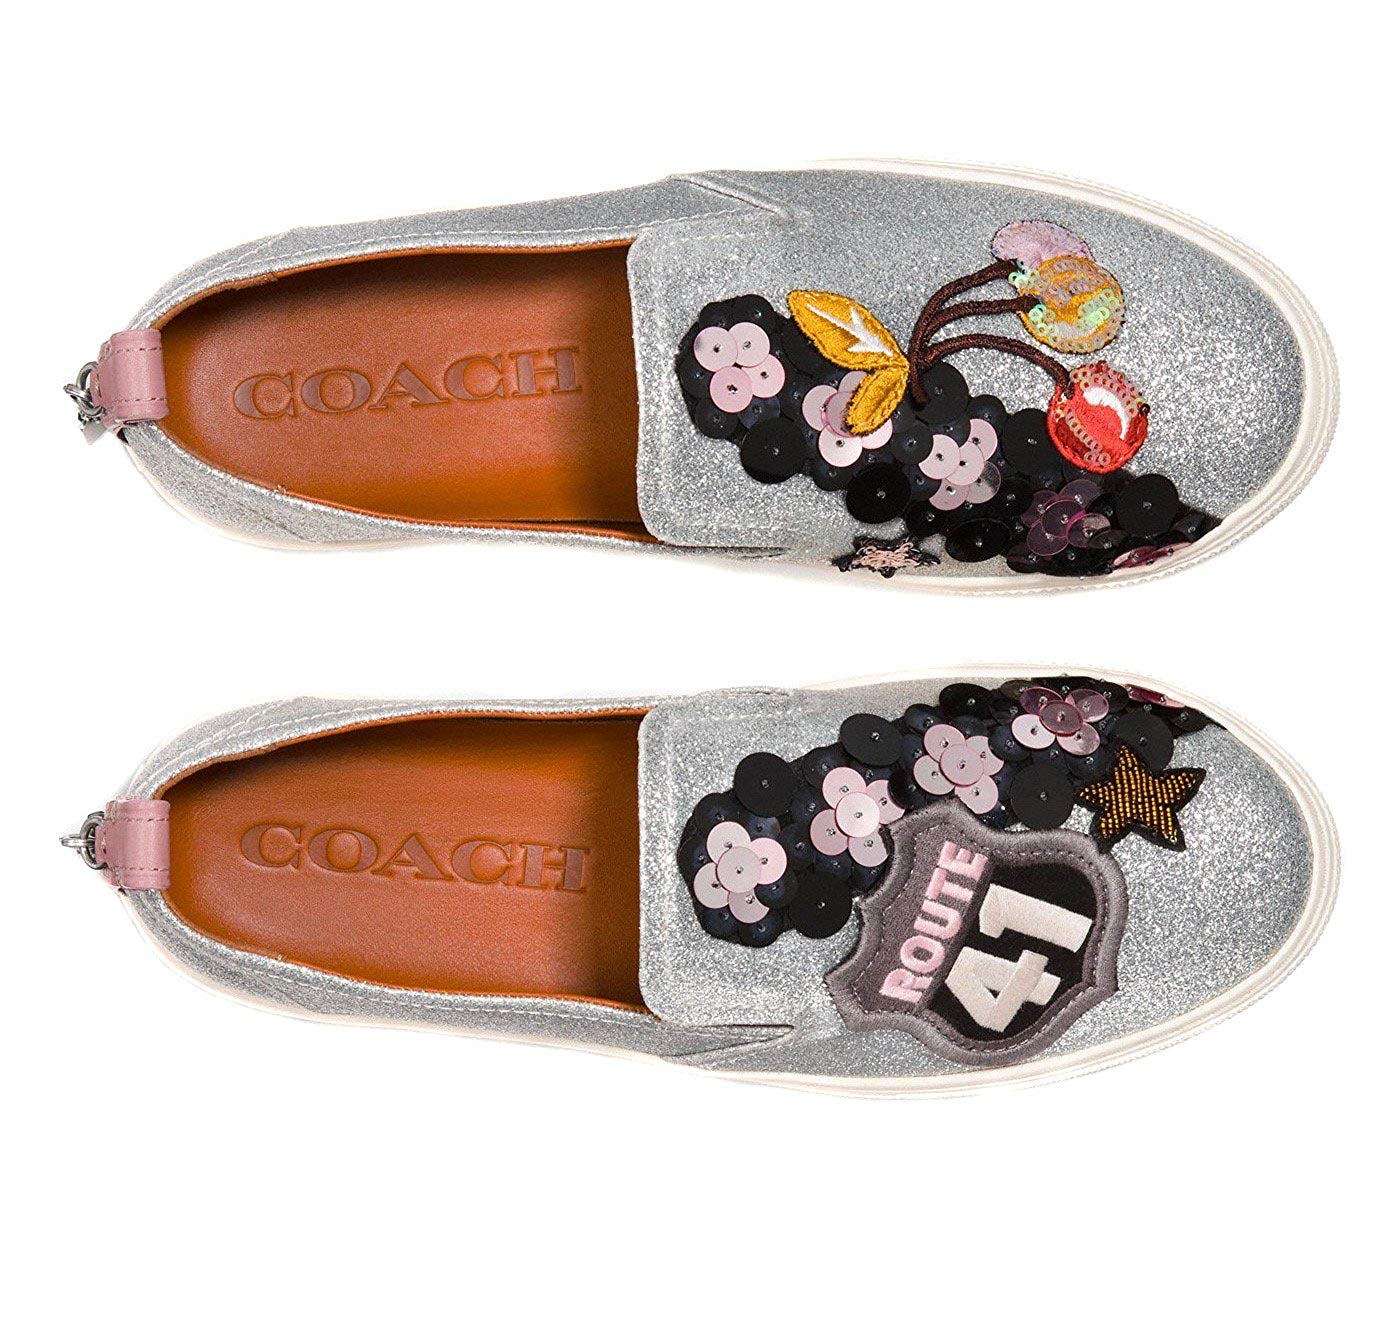 d83cb5b7 Details about Coach Women's Slip on Shoes Sneakers with Cherry Patches